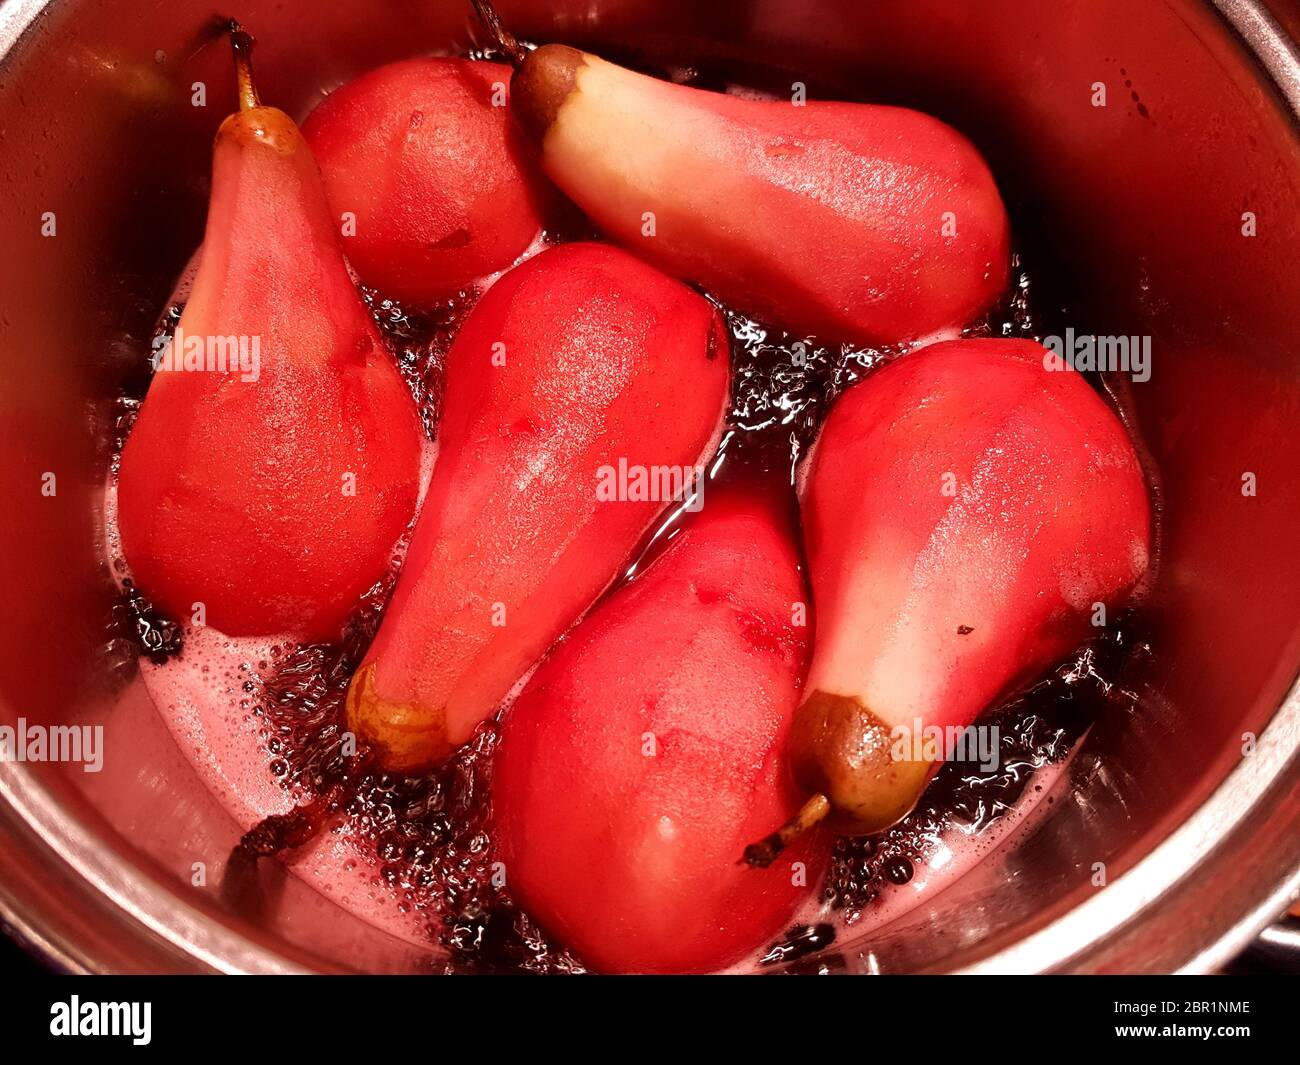 Preparation of poached pears in red wine recipe, one of sequence of 12 images Stock Photo